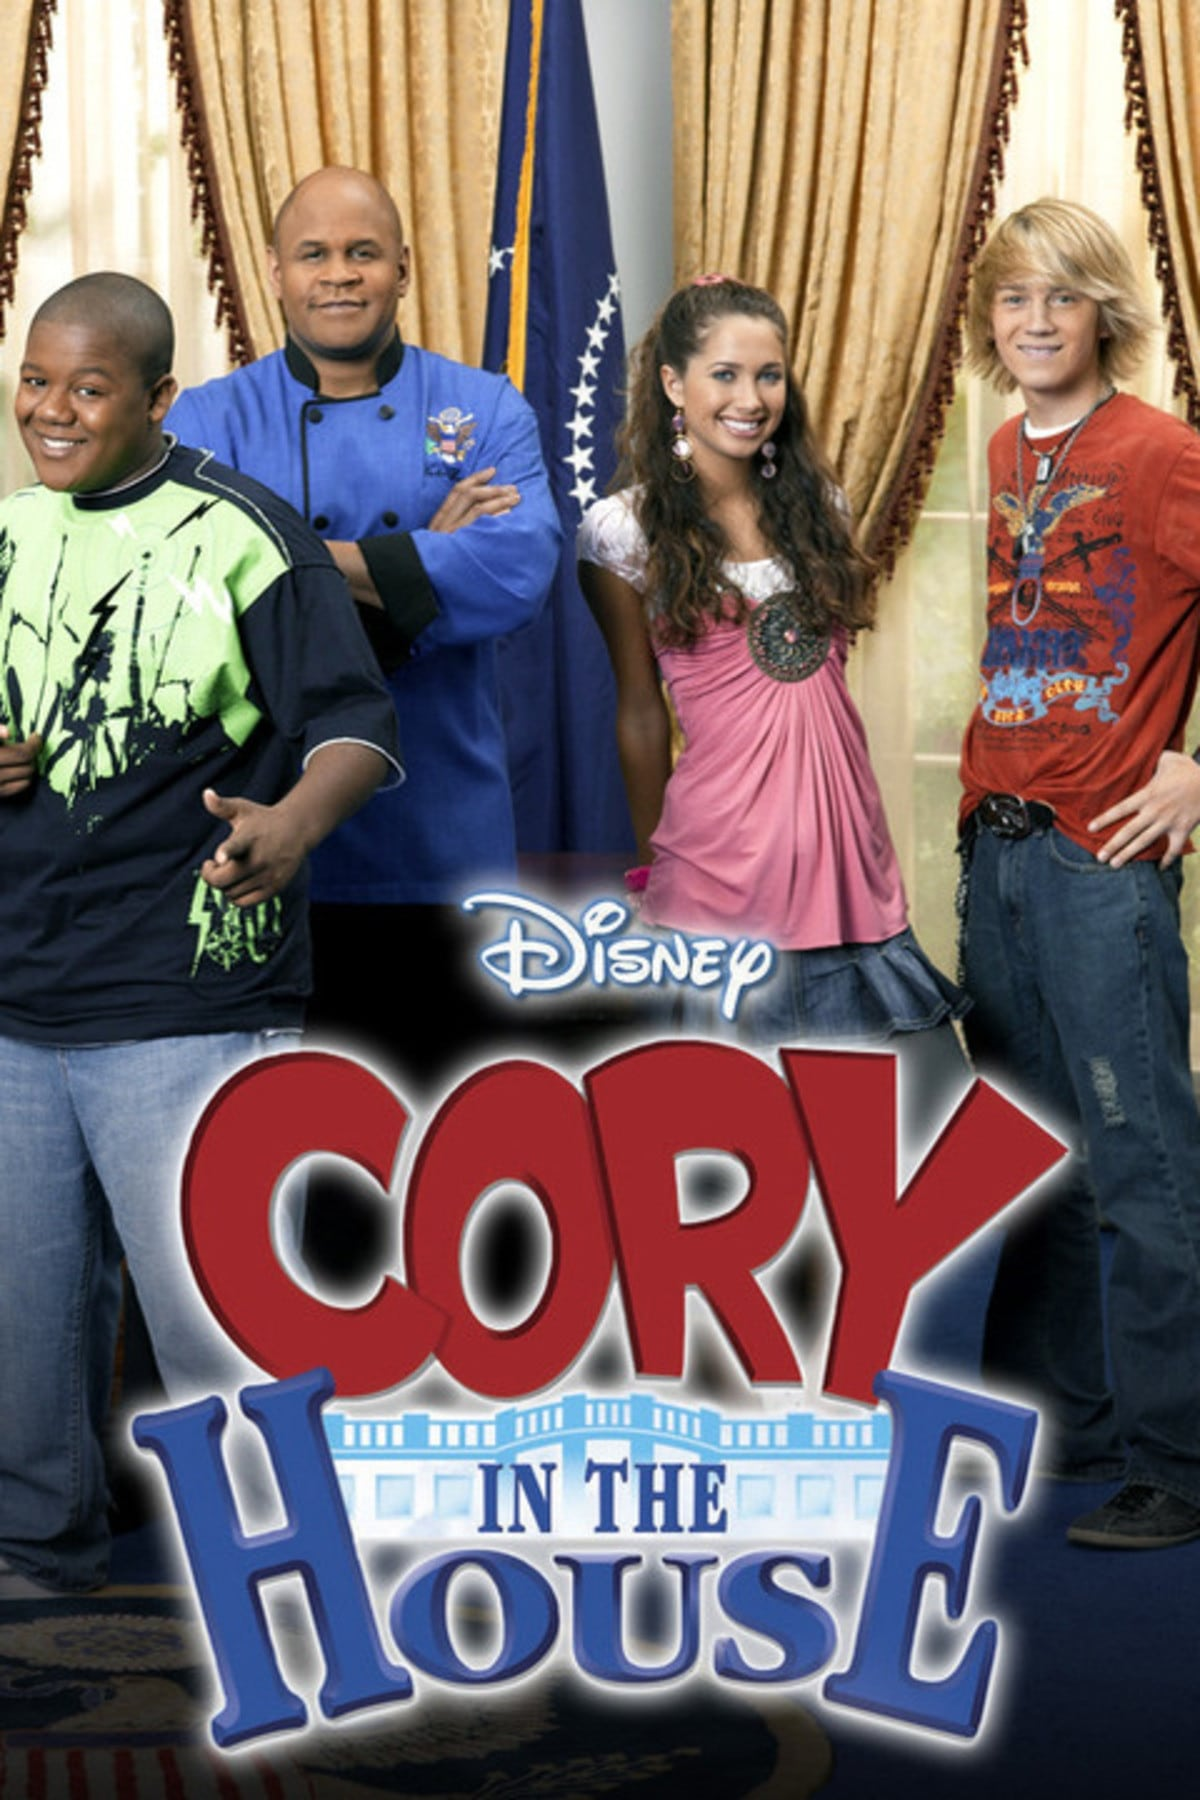 Cory in the House (2007)